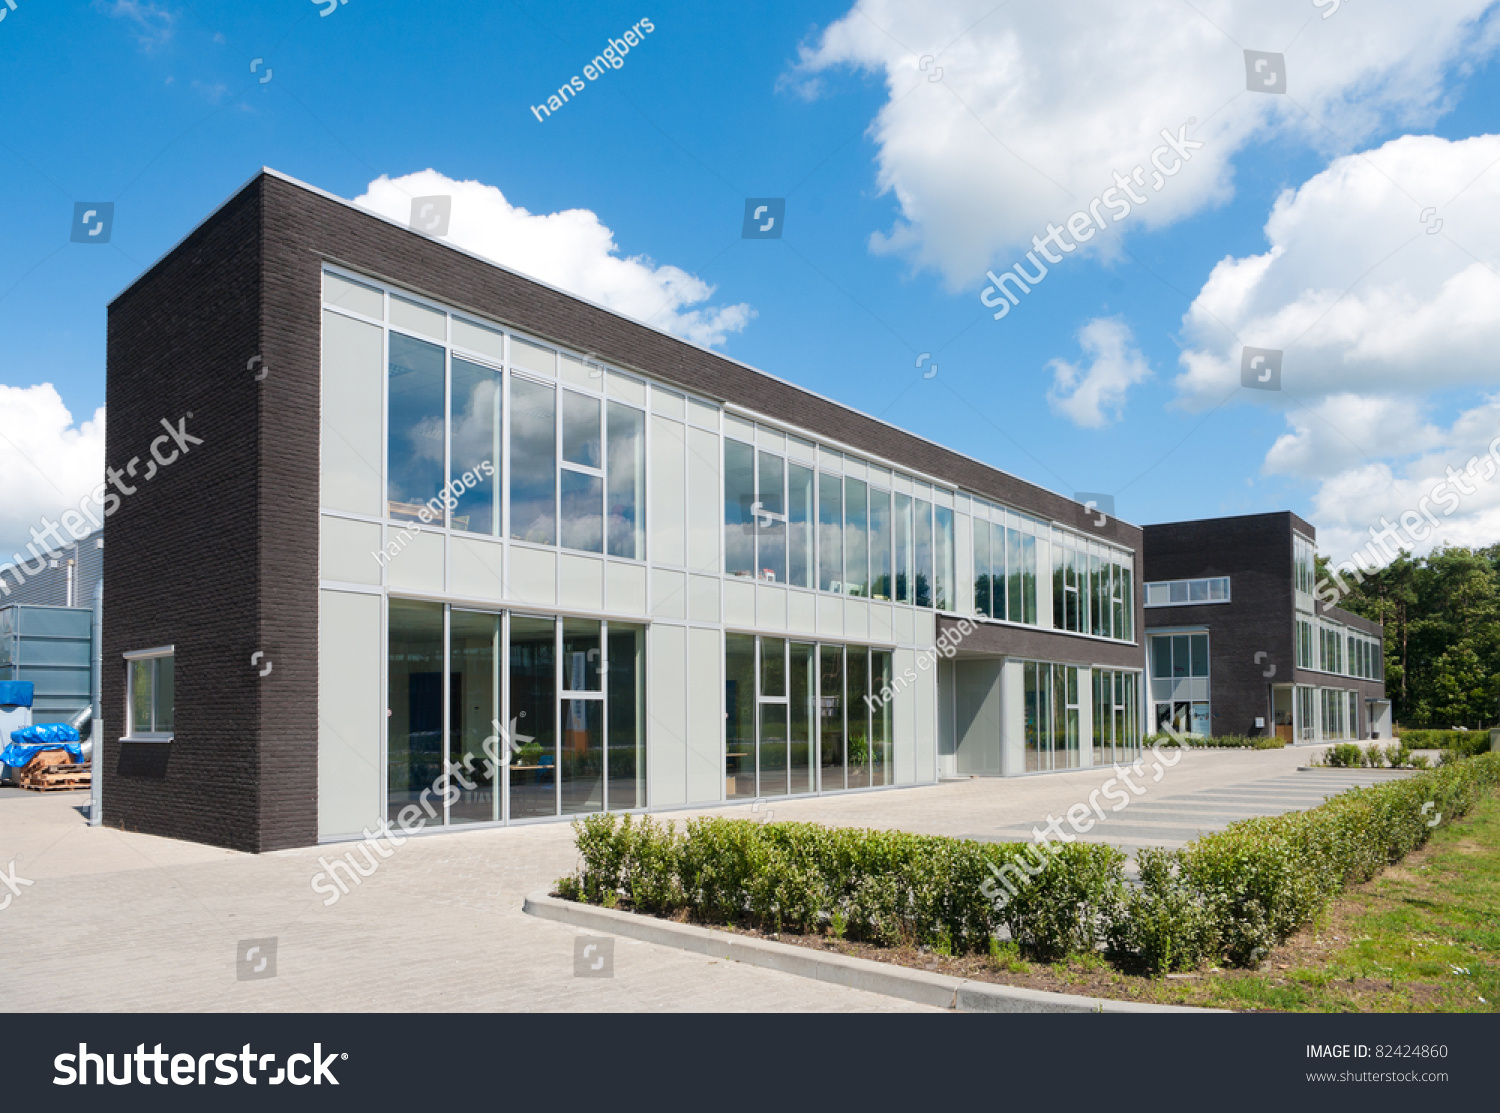 Small modern office building against nice stock photo for Modern small office building design